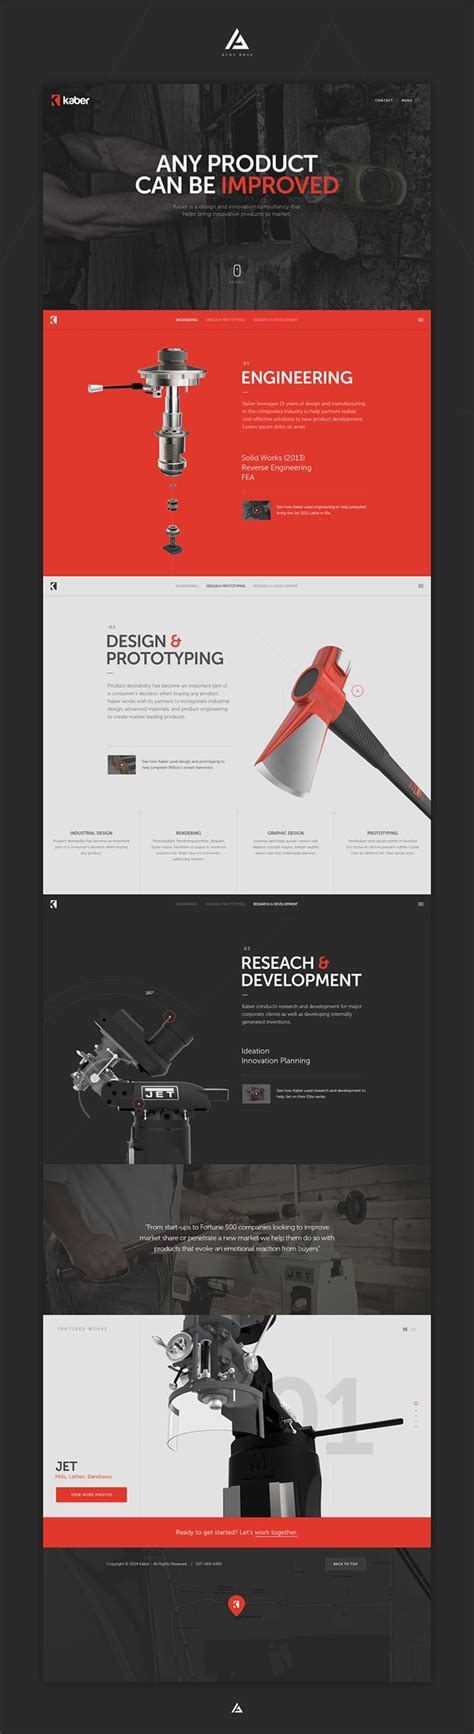 web design inspiration 20 clean web design inspiration 2015